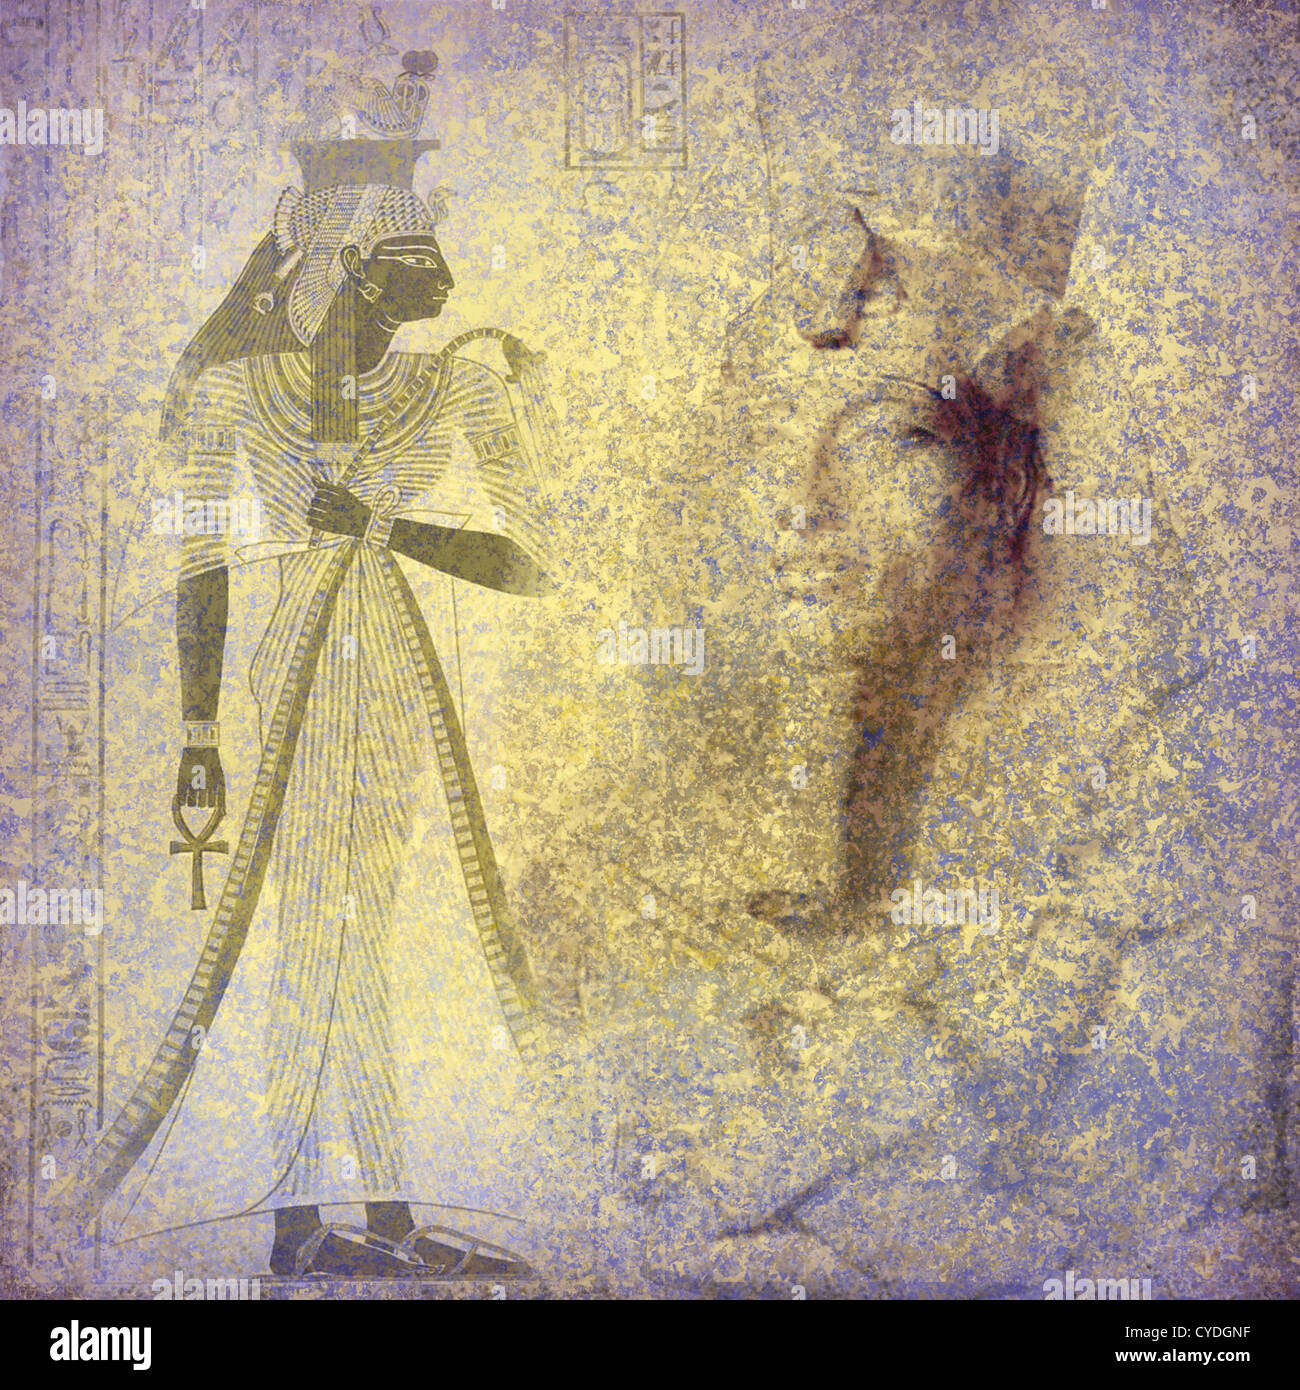 Ancient Egypt Wallpaper With Queen Nefertiti And Hieroglyphics